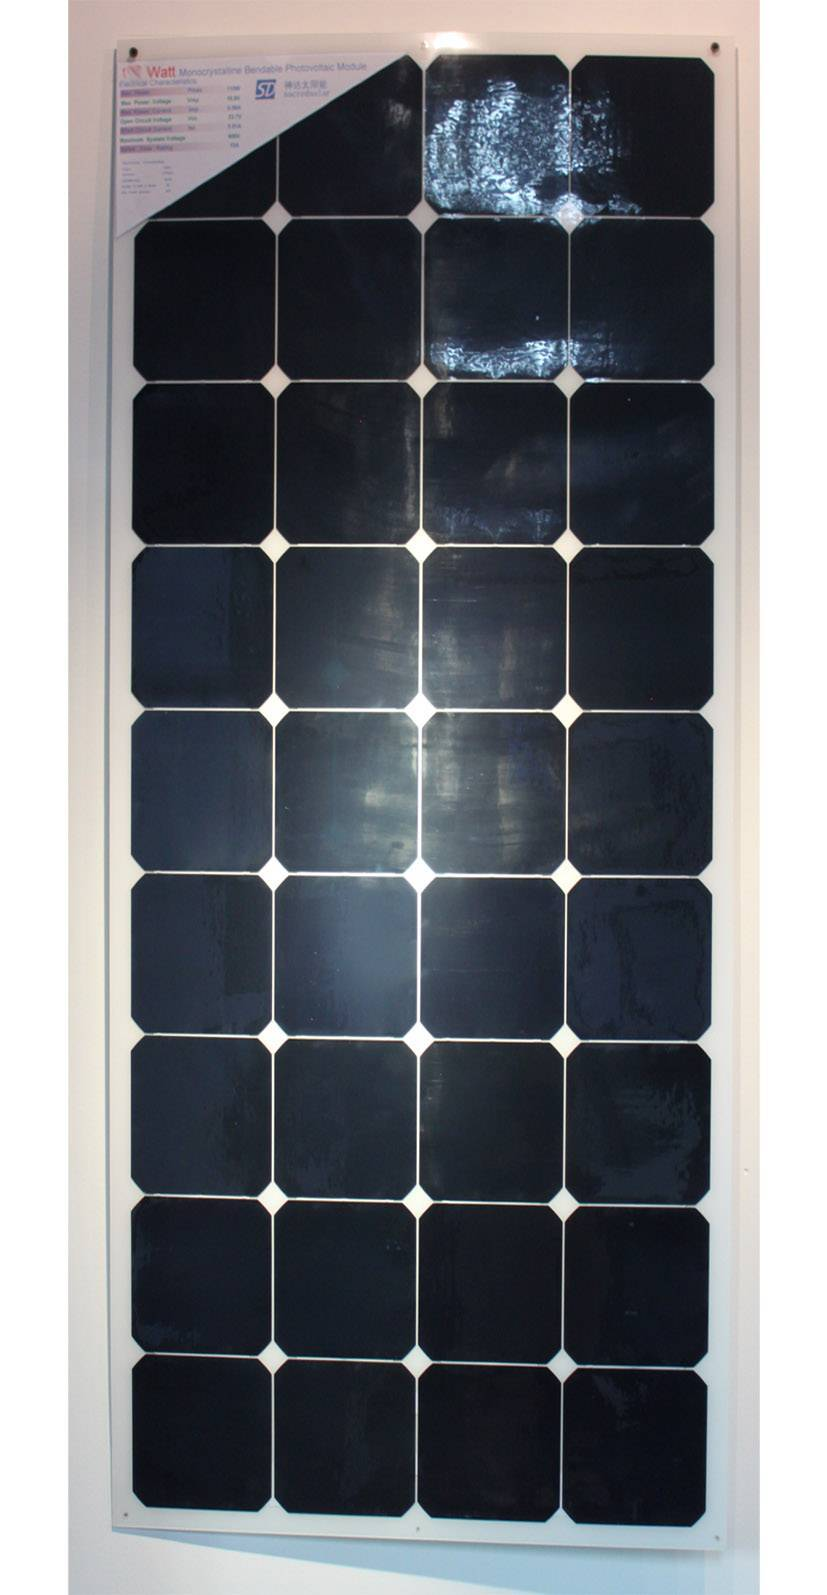 130 Watts high efficiency solar panel with back contact cells